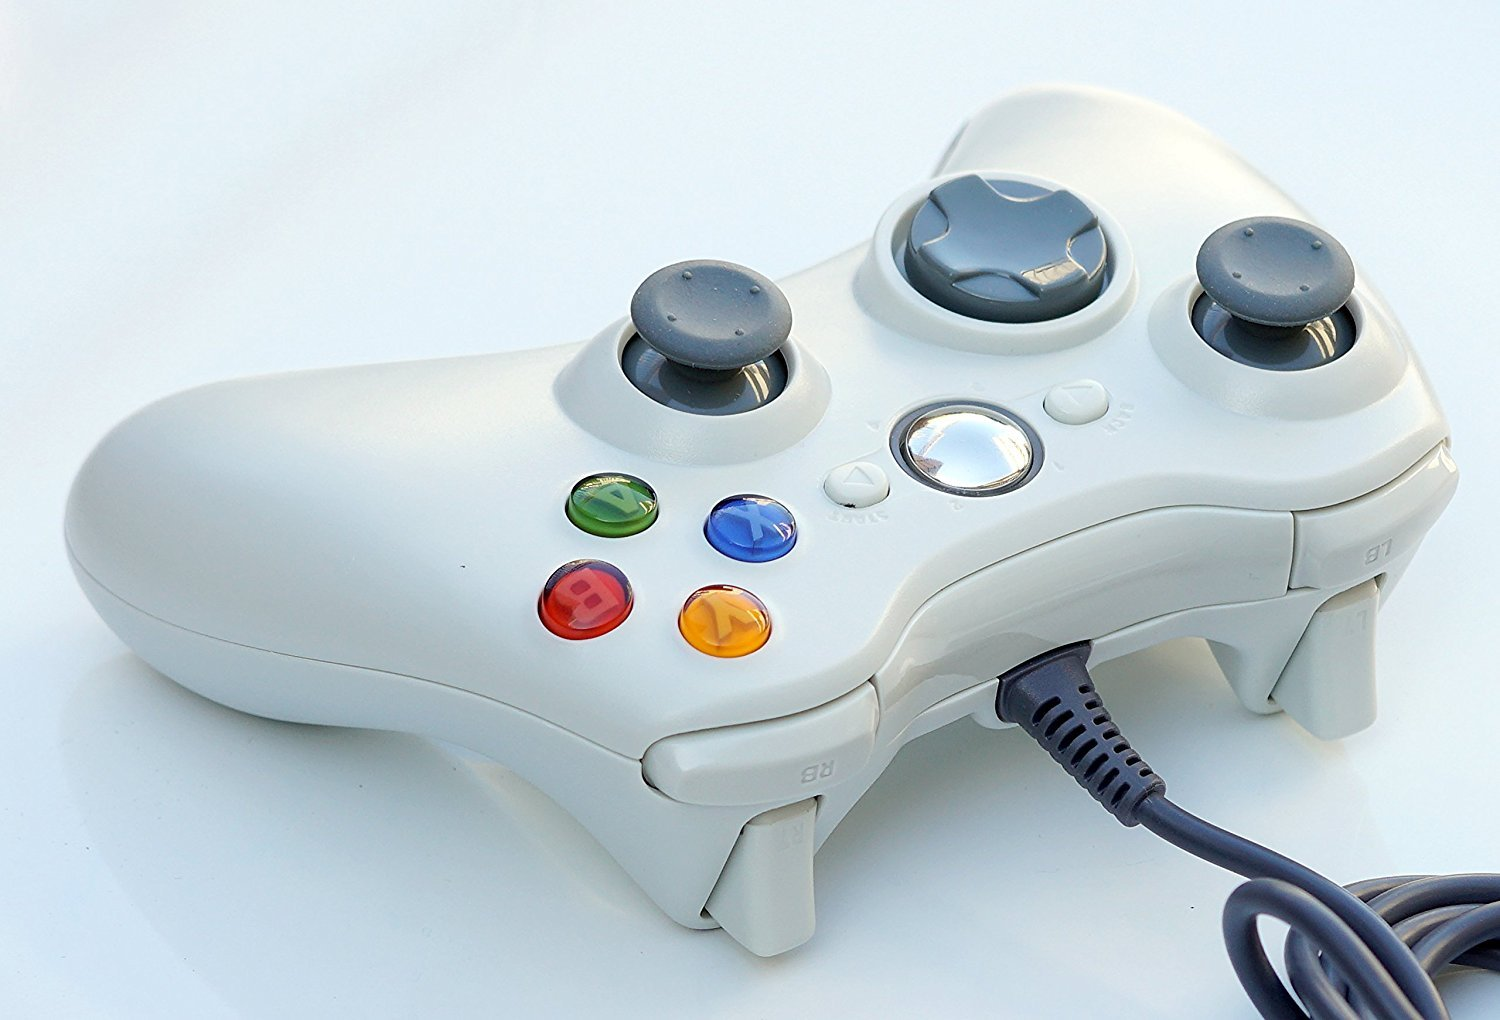 Amazon.com: PomeMall USB Wired Game Pad Controller for Xbox 360 ...